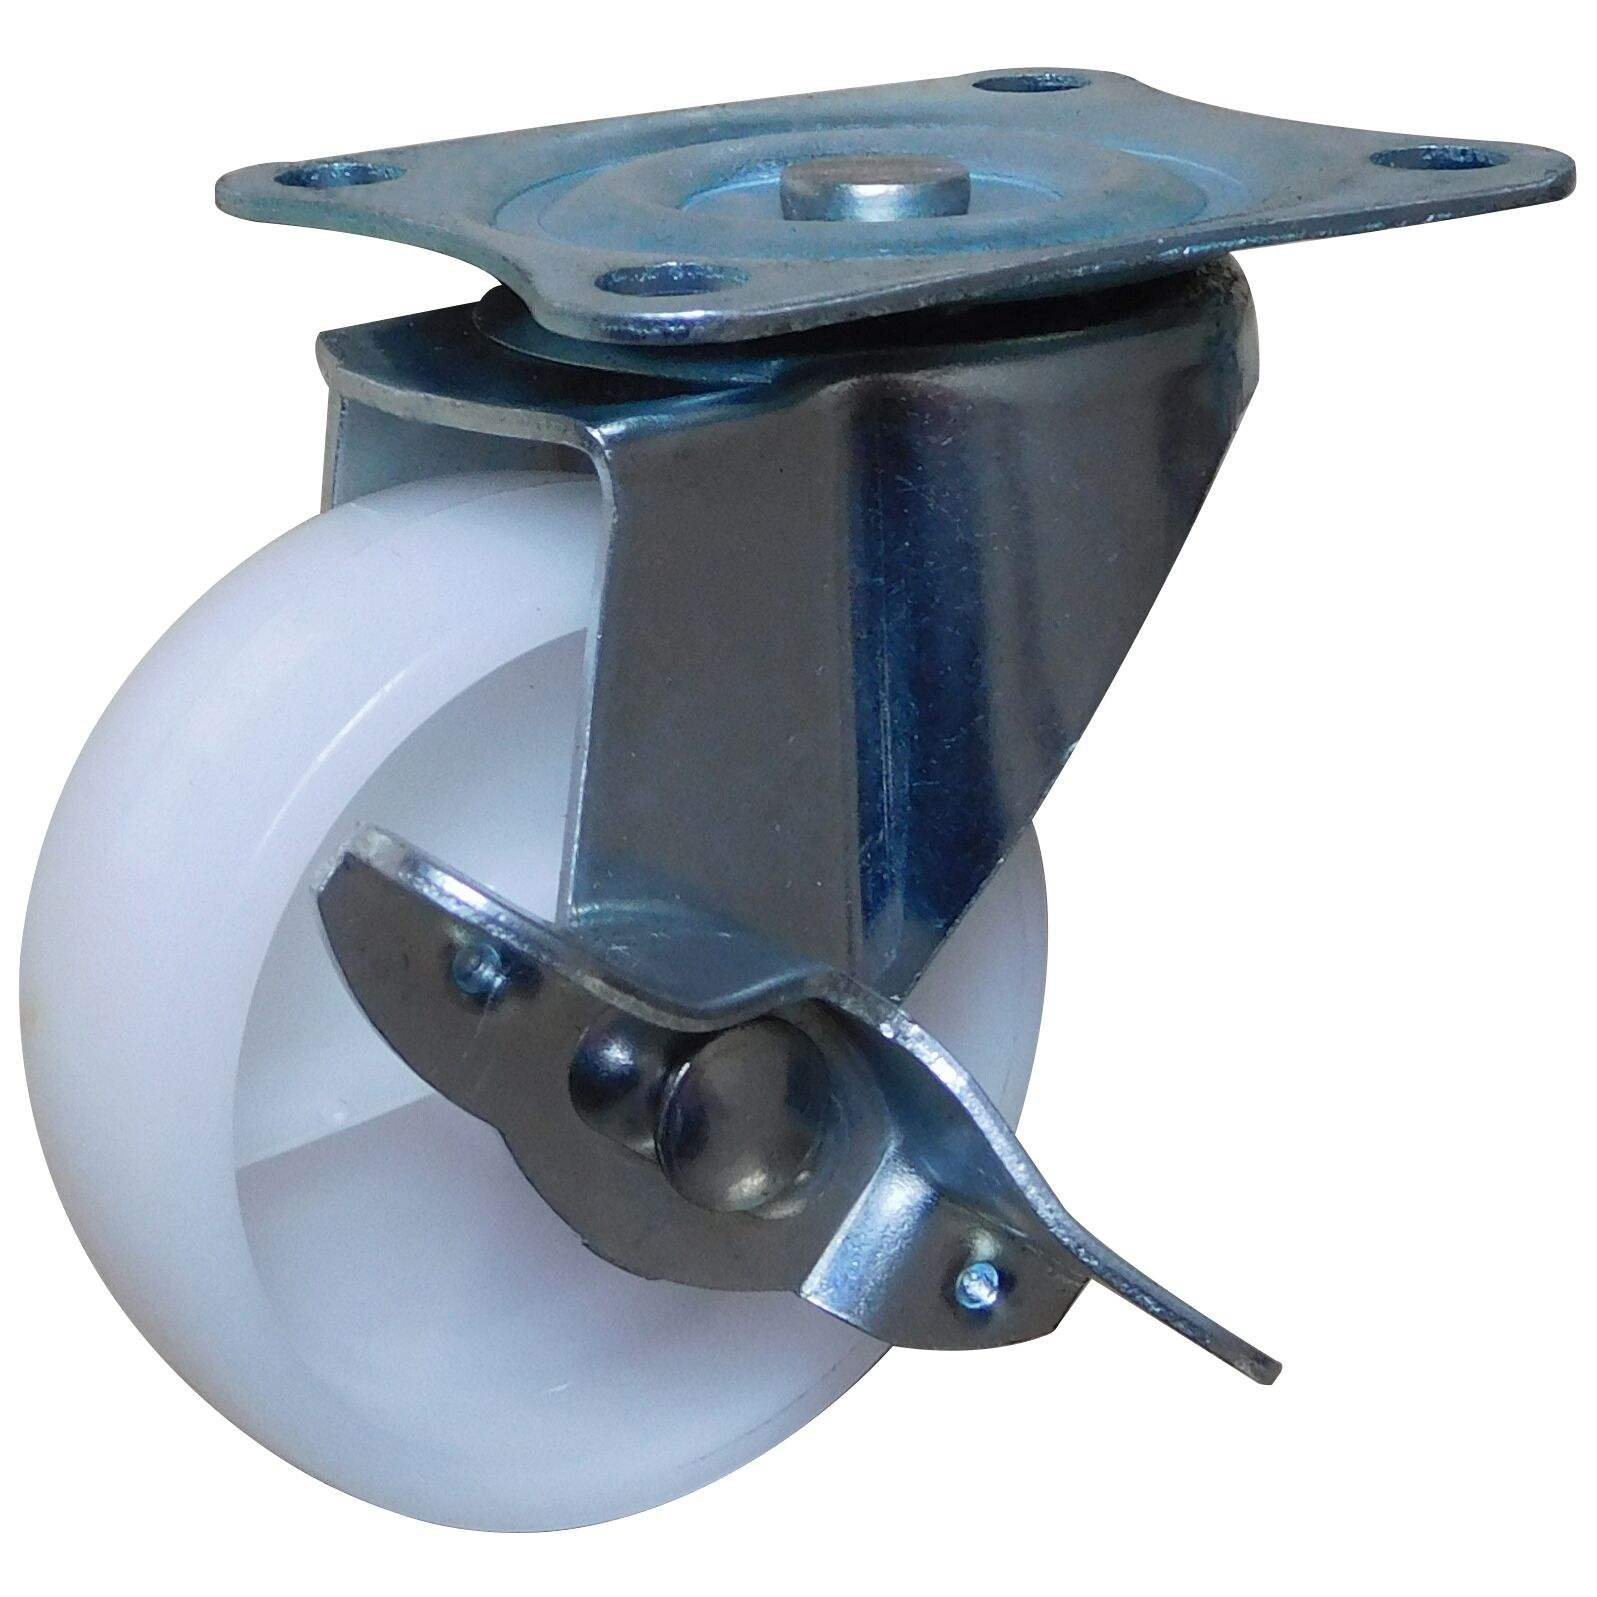 Hot Sale 2 Inch Small Swivel White PP Caster Wheel With Brake